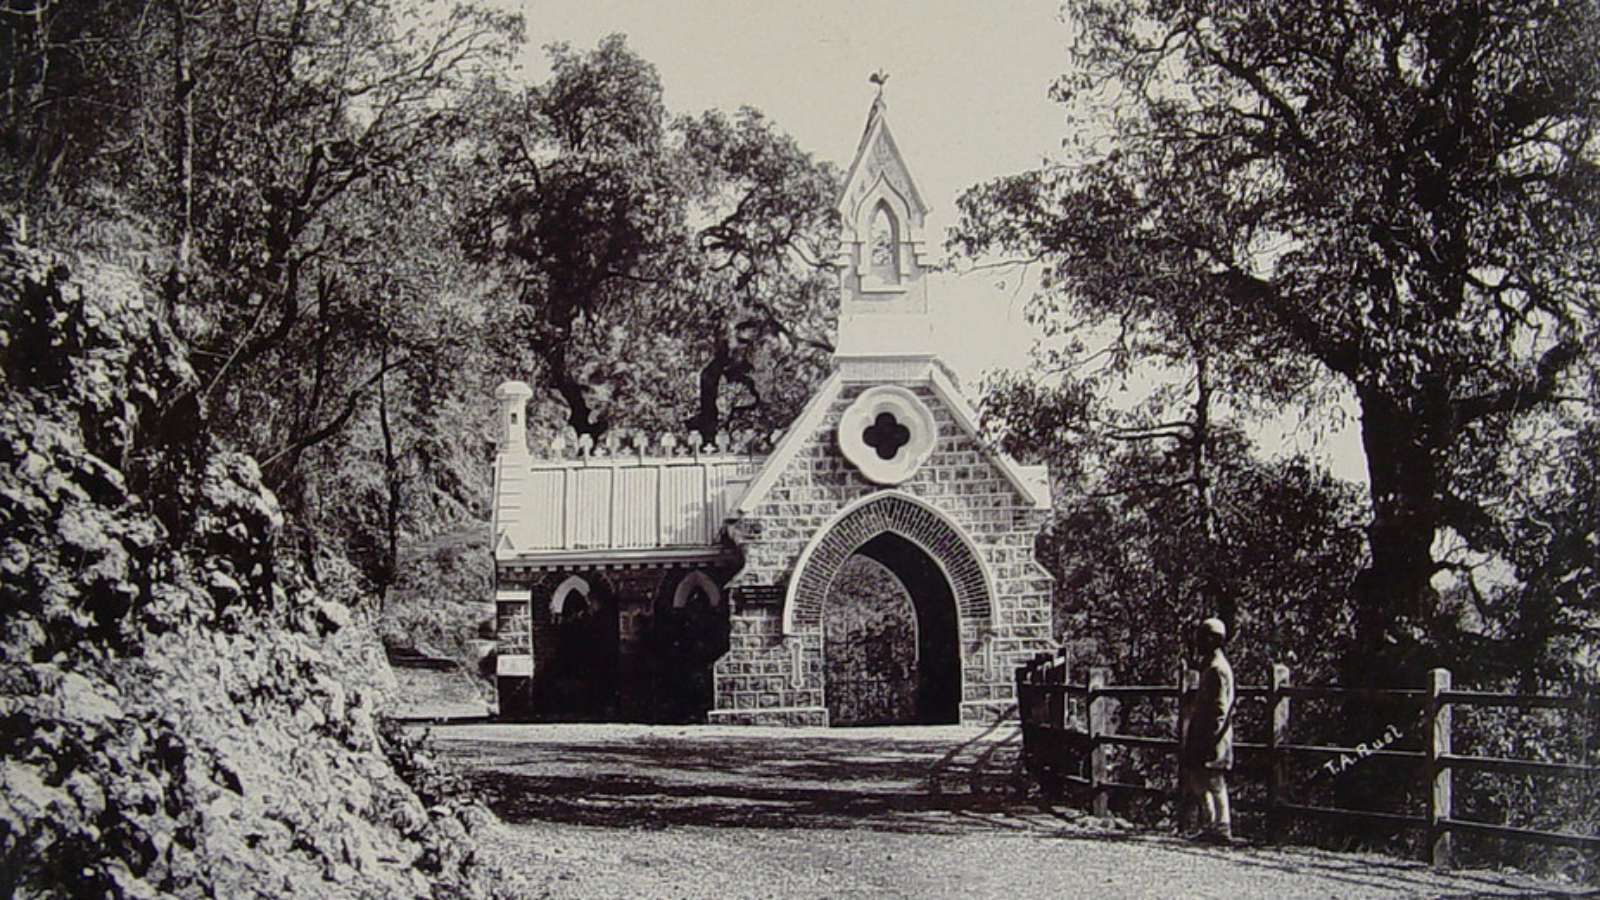 The lychgate of the Camel's Back Road Cemetery.